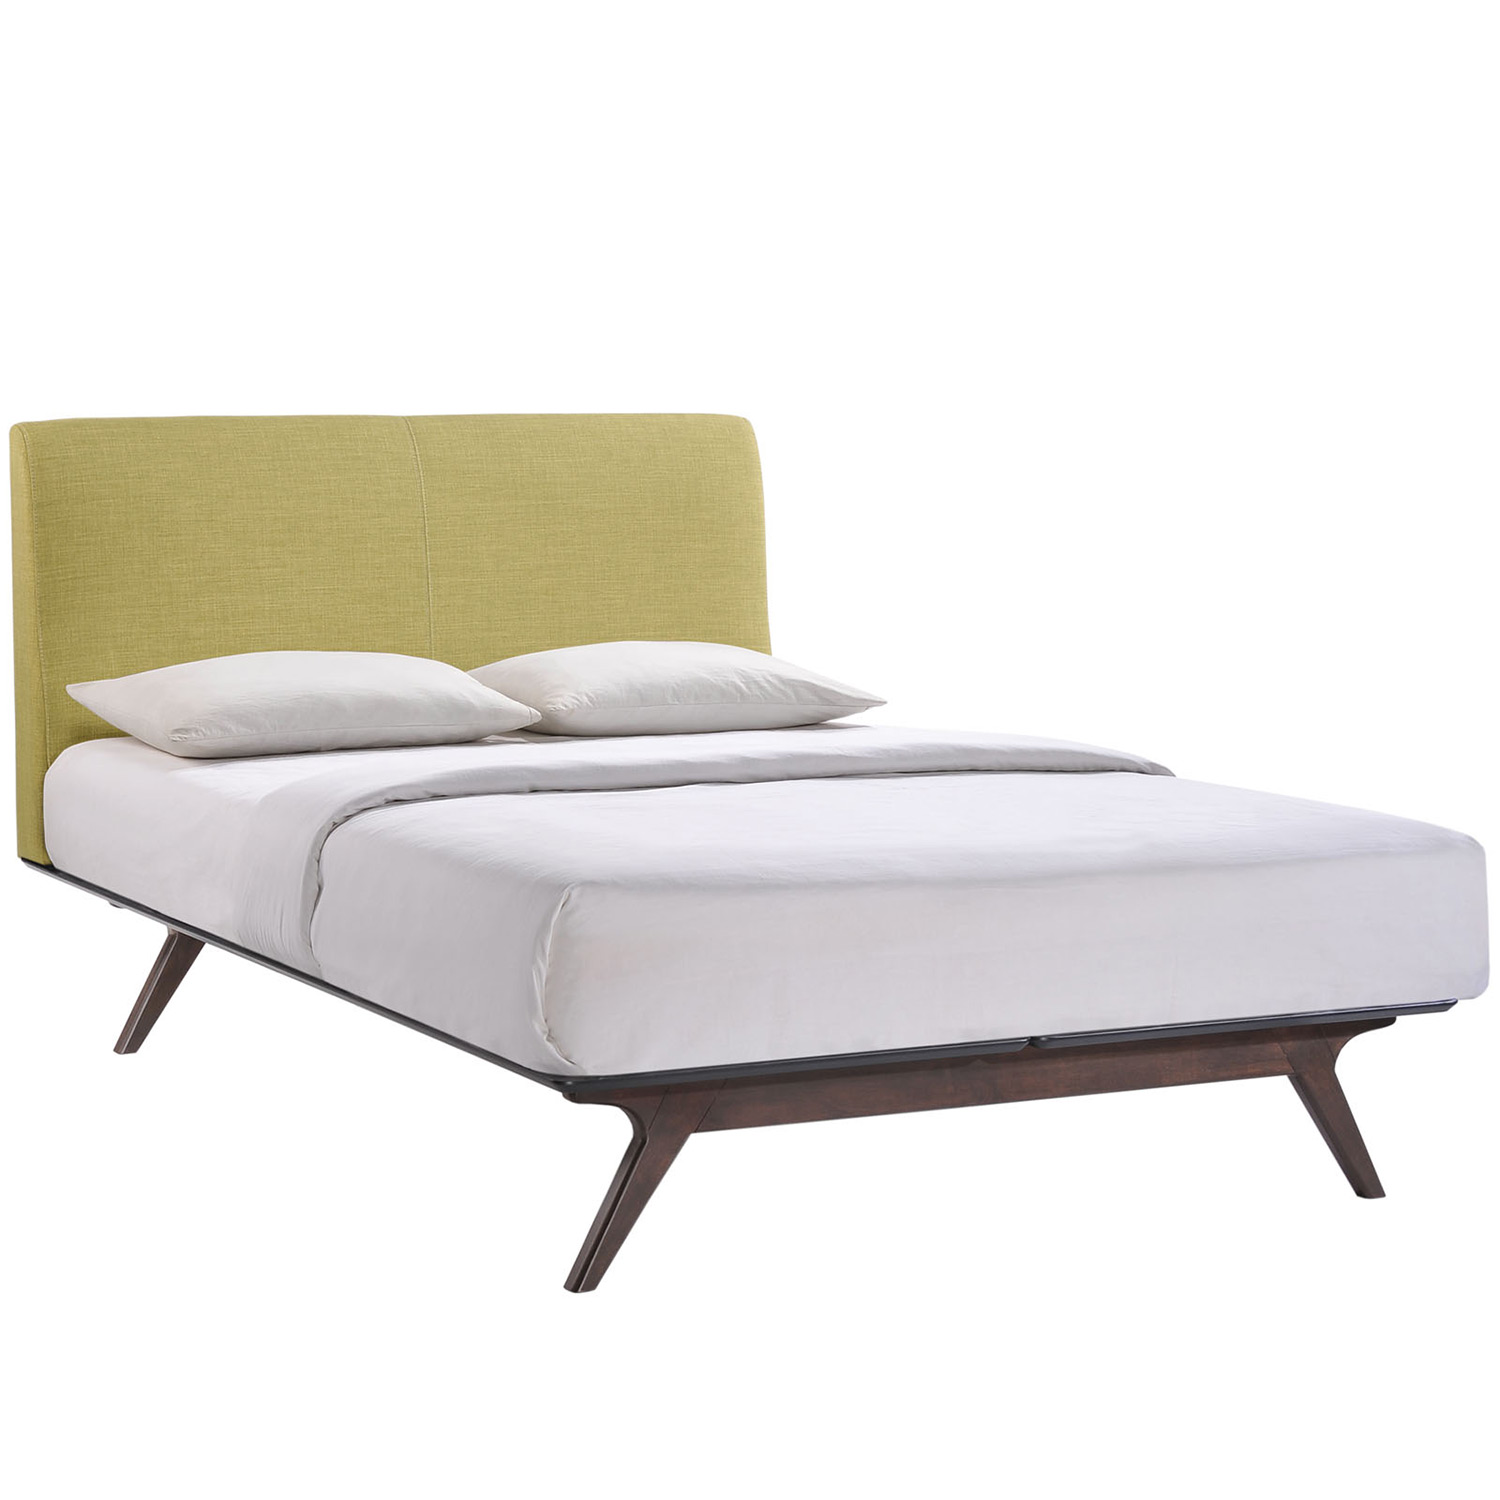 Modway Tracy Queen Bed - Cappuccino Green